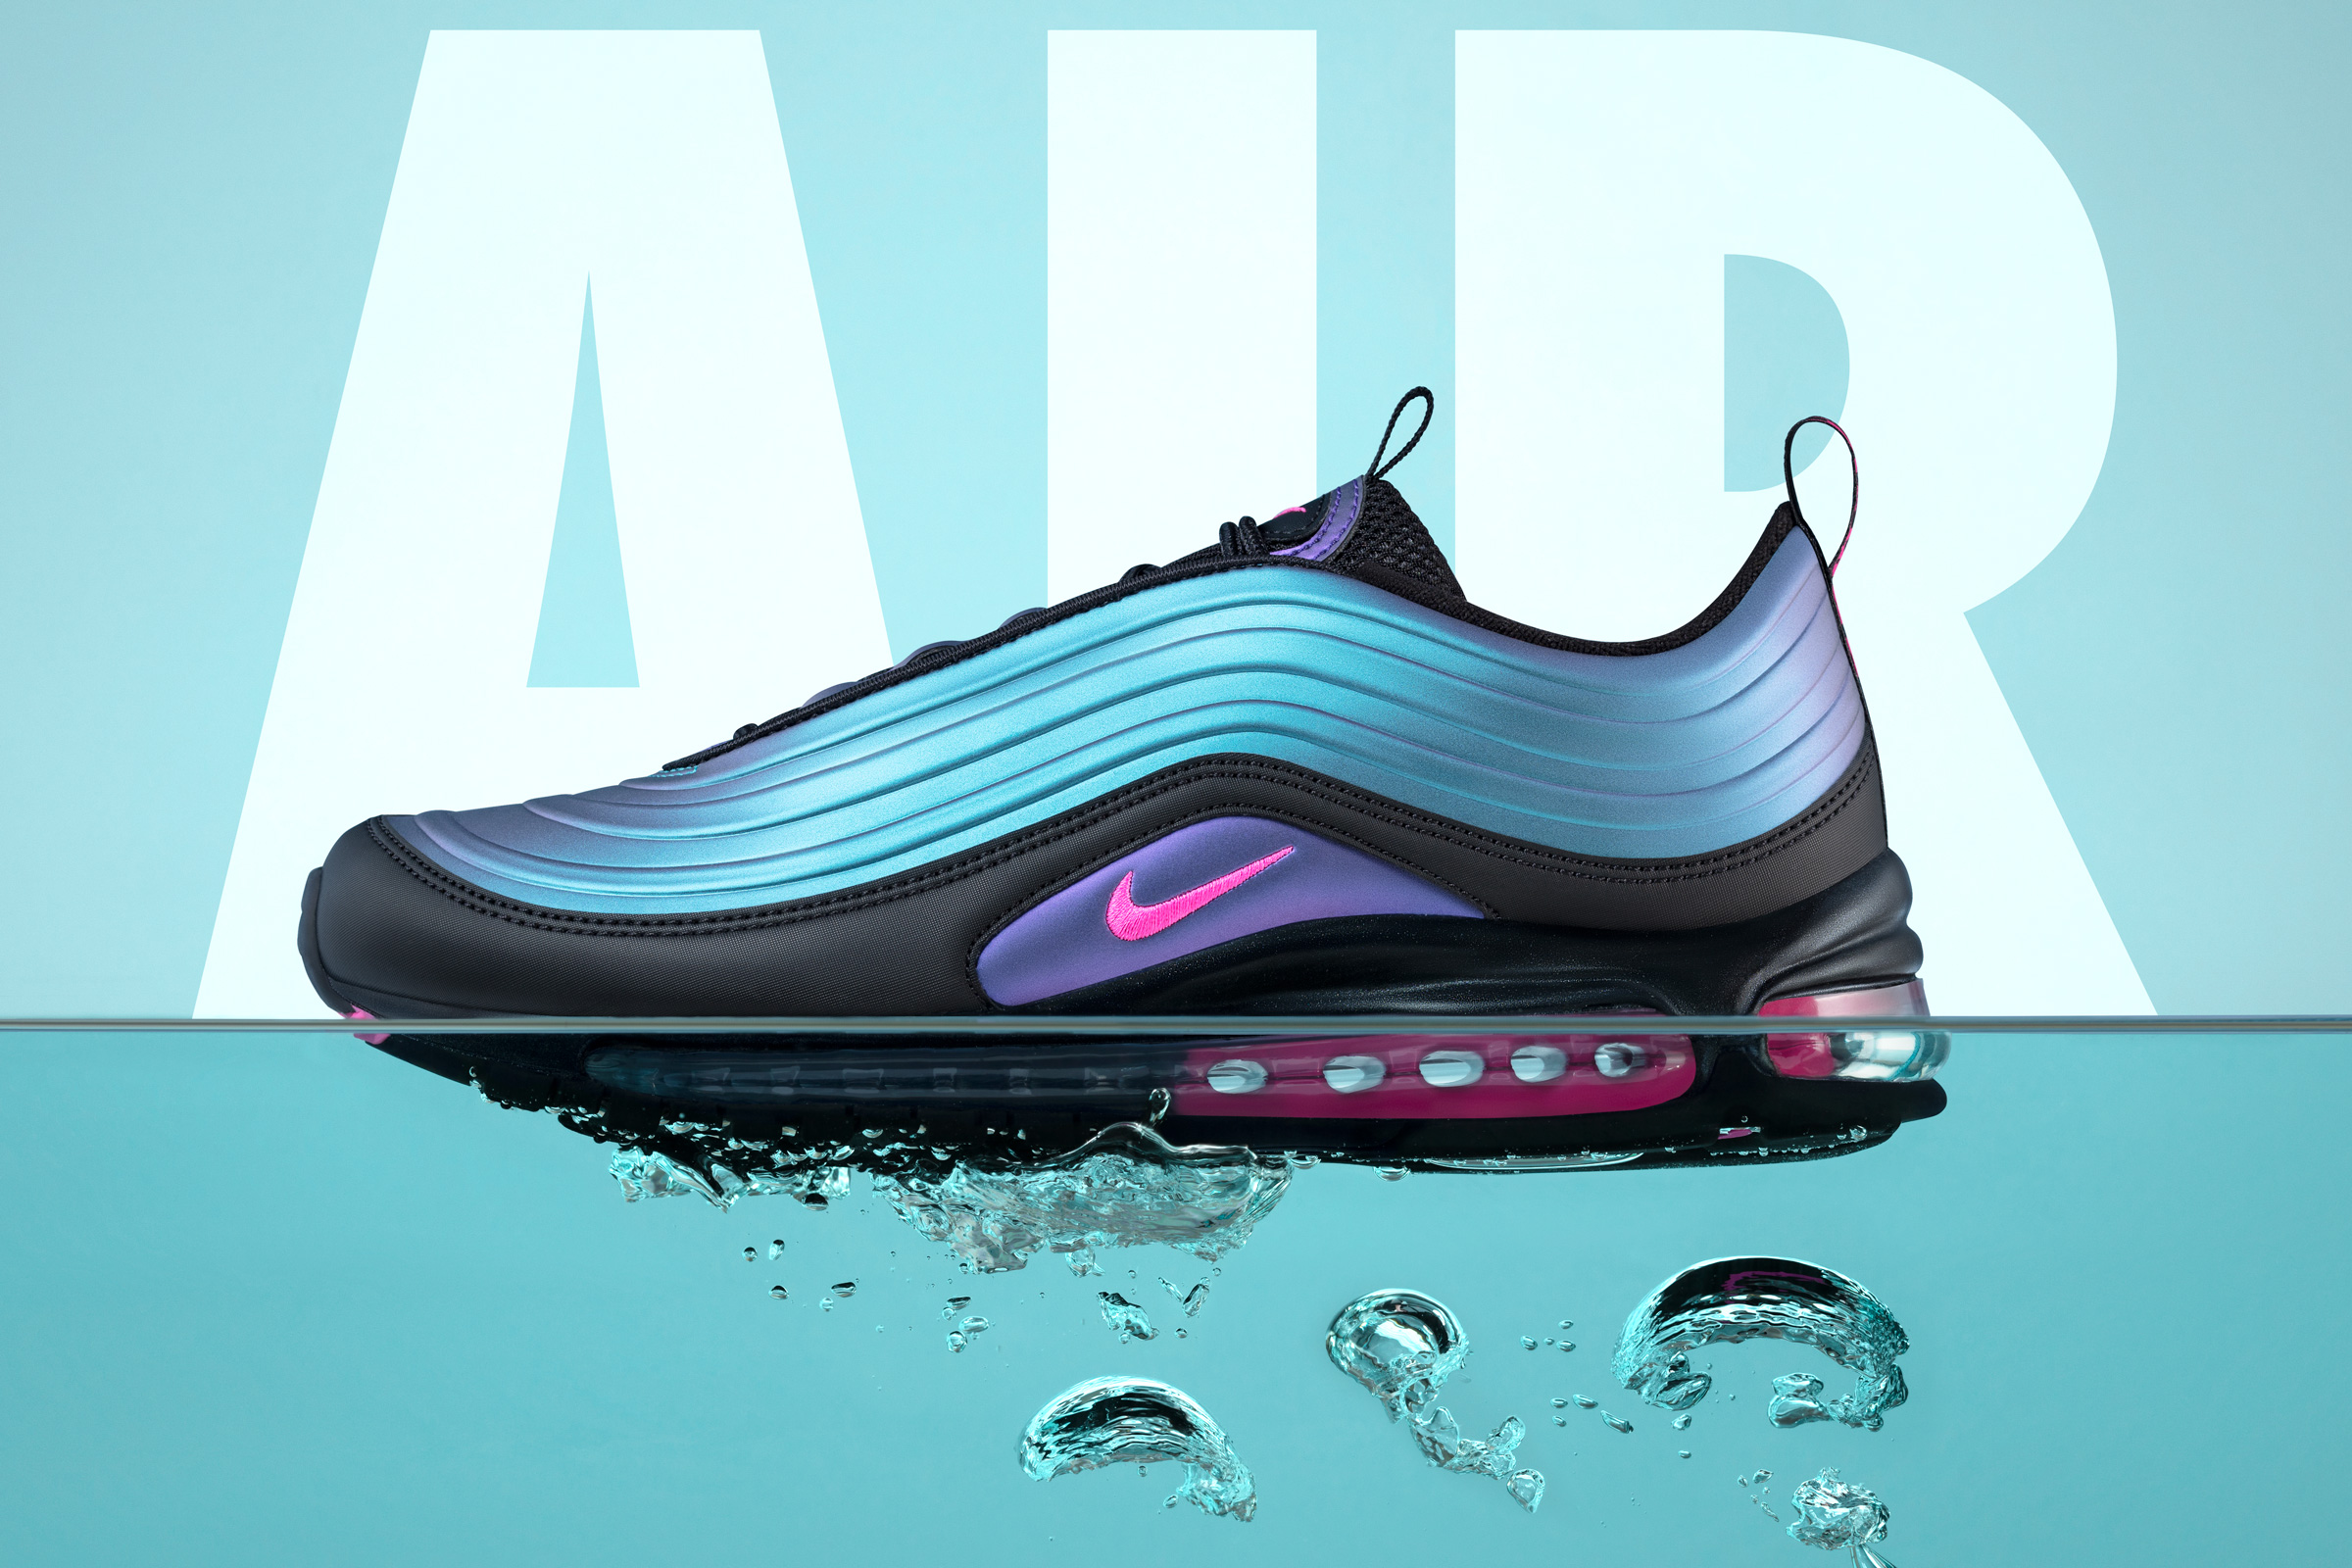 Nike Air Max 97 LX floating in Water above O2-bubbles.